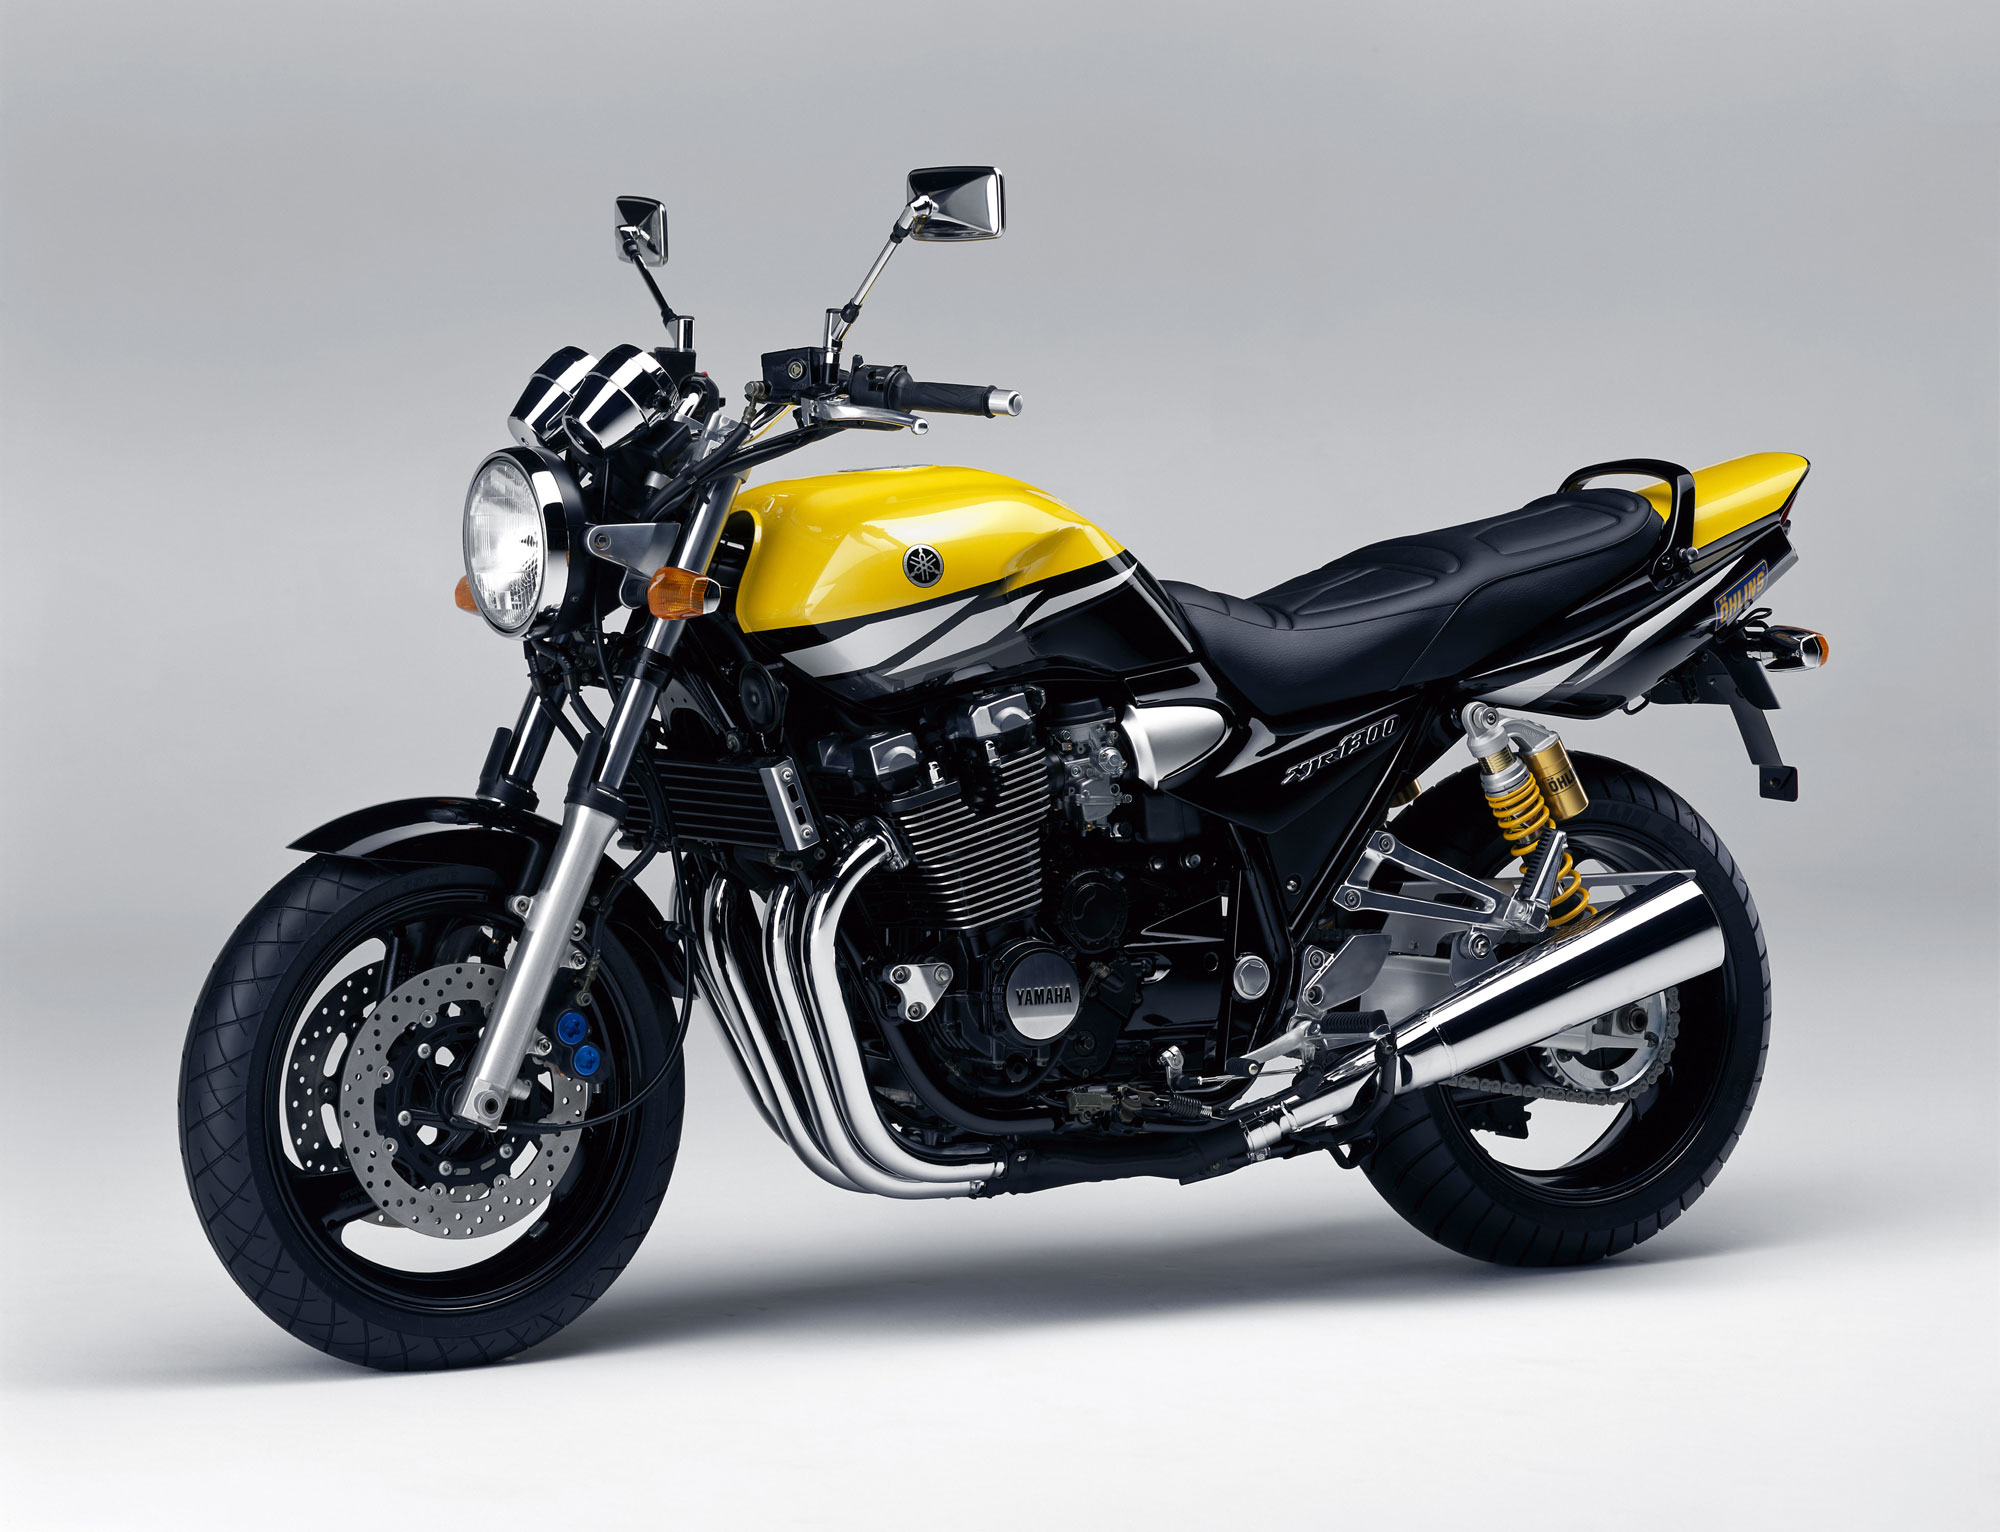 Price List Of Yamaha Motorcycle In Philippines